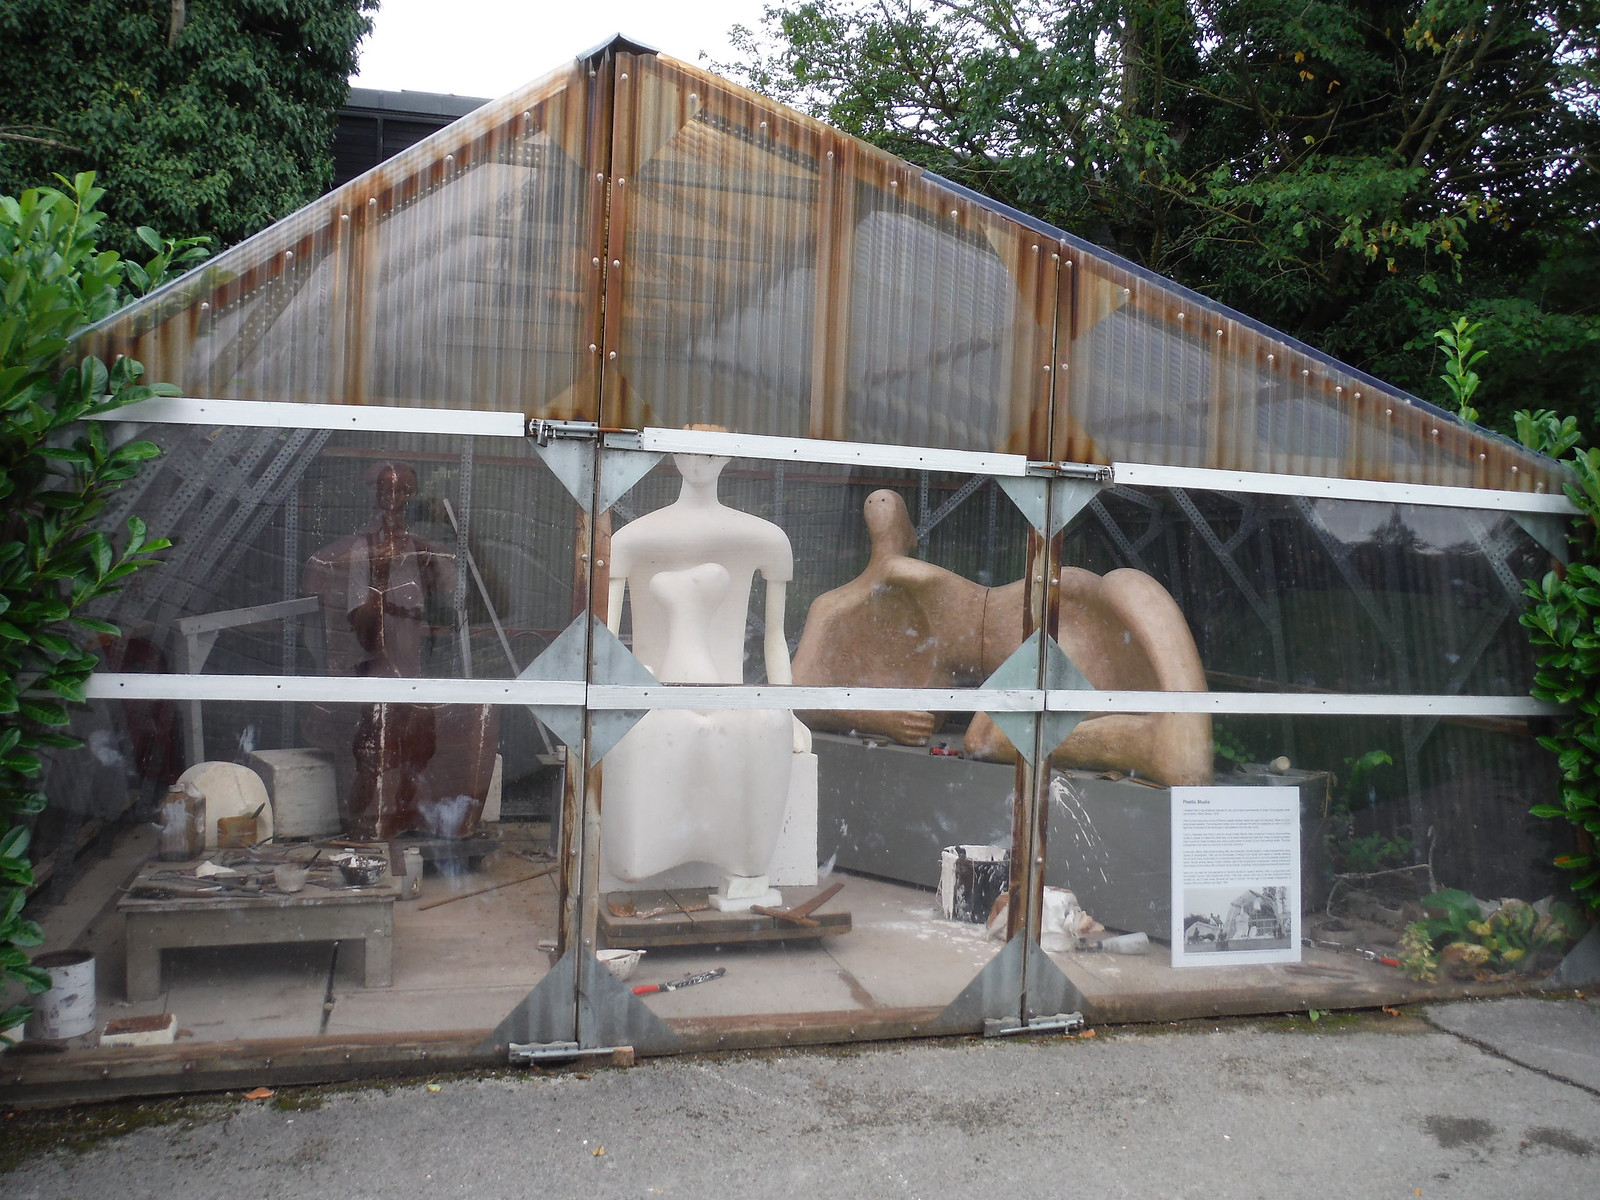 Plastic Studio, Henry Moore Foundation SWC Walk 164 Roydon to Sawbridgeworth via Henry Moore Foundation